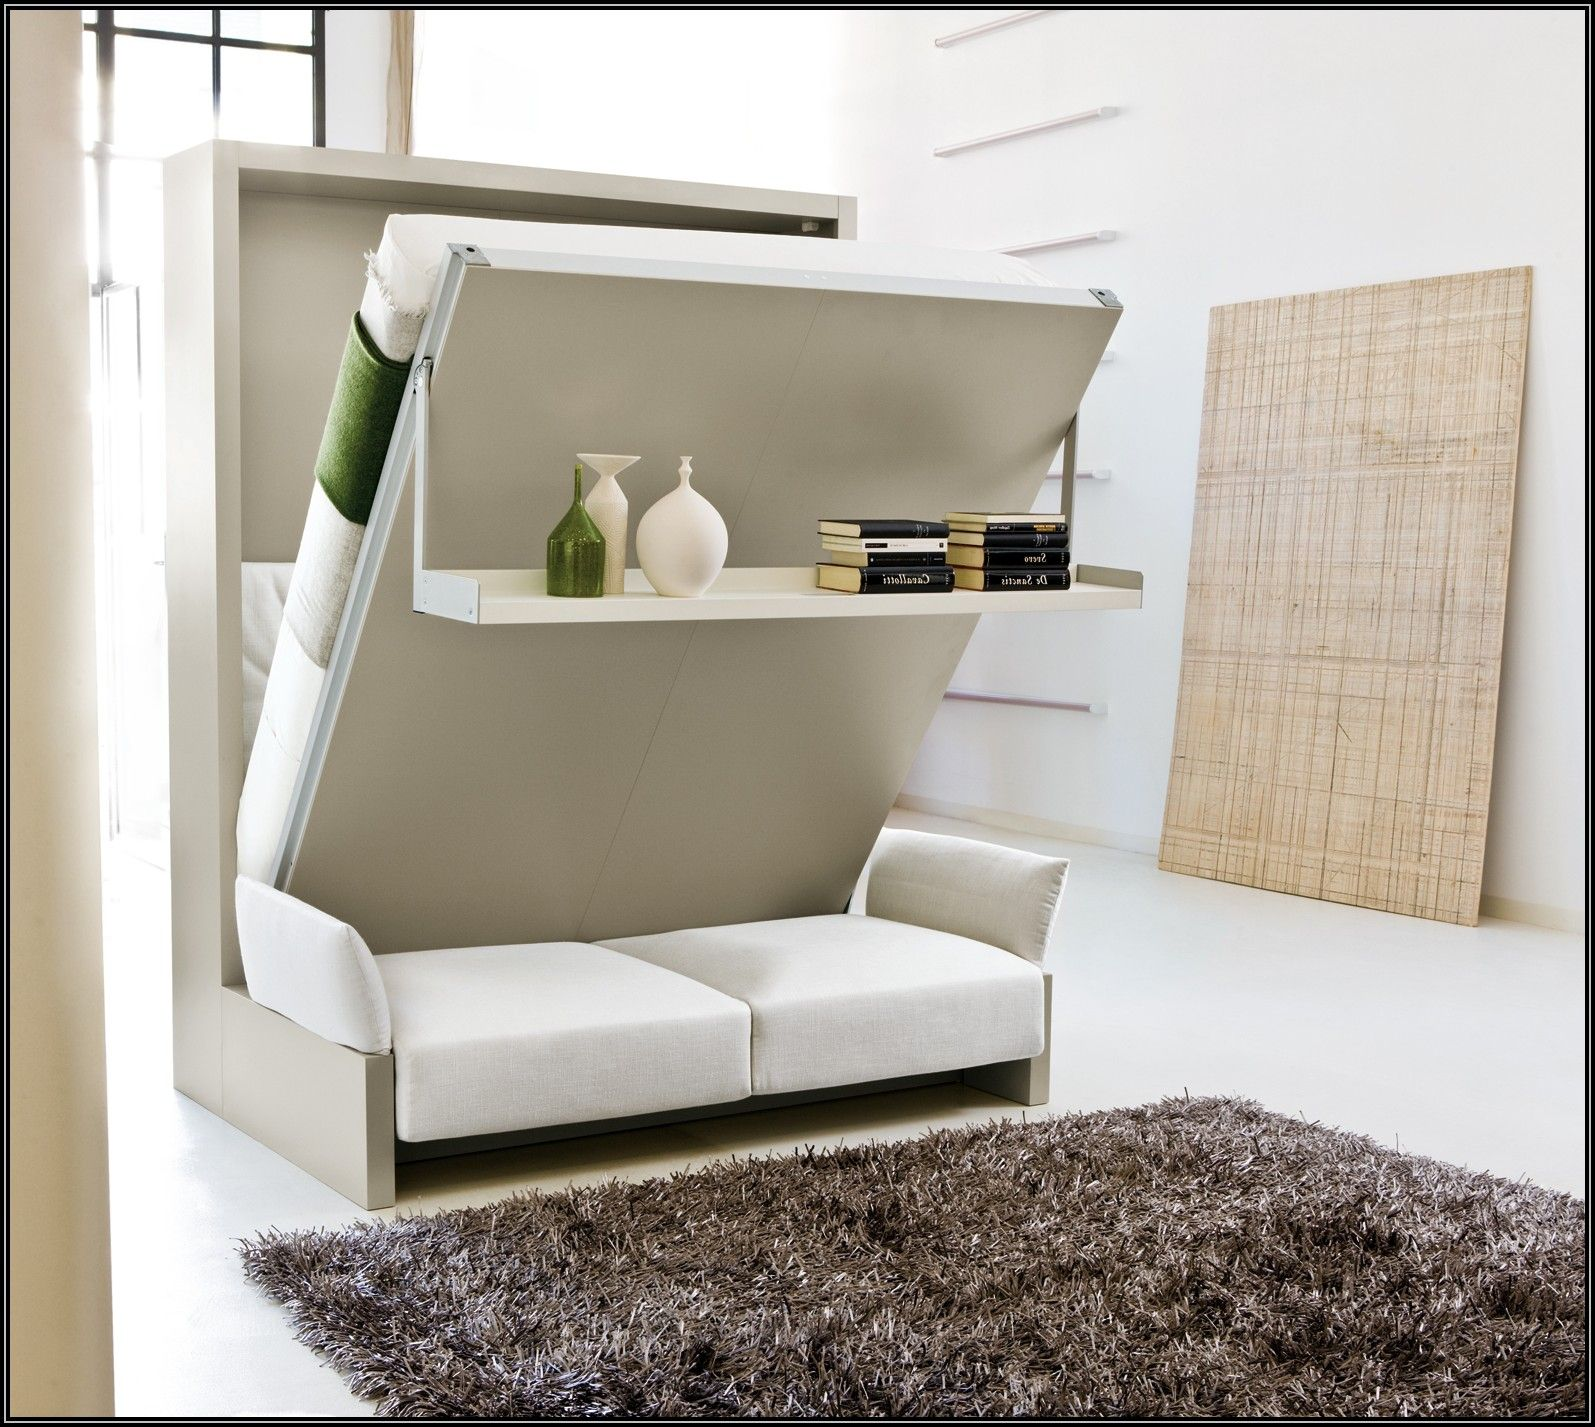 Save Small Space In A Bedroom Using Murphy Bed Ikea